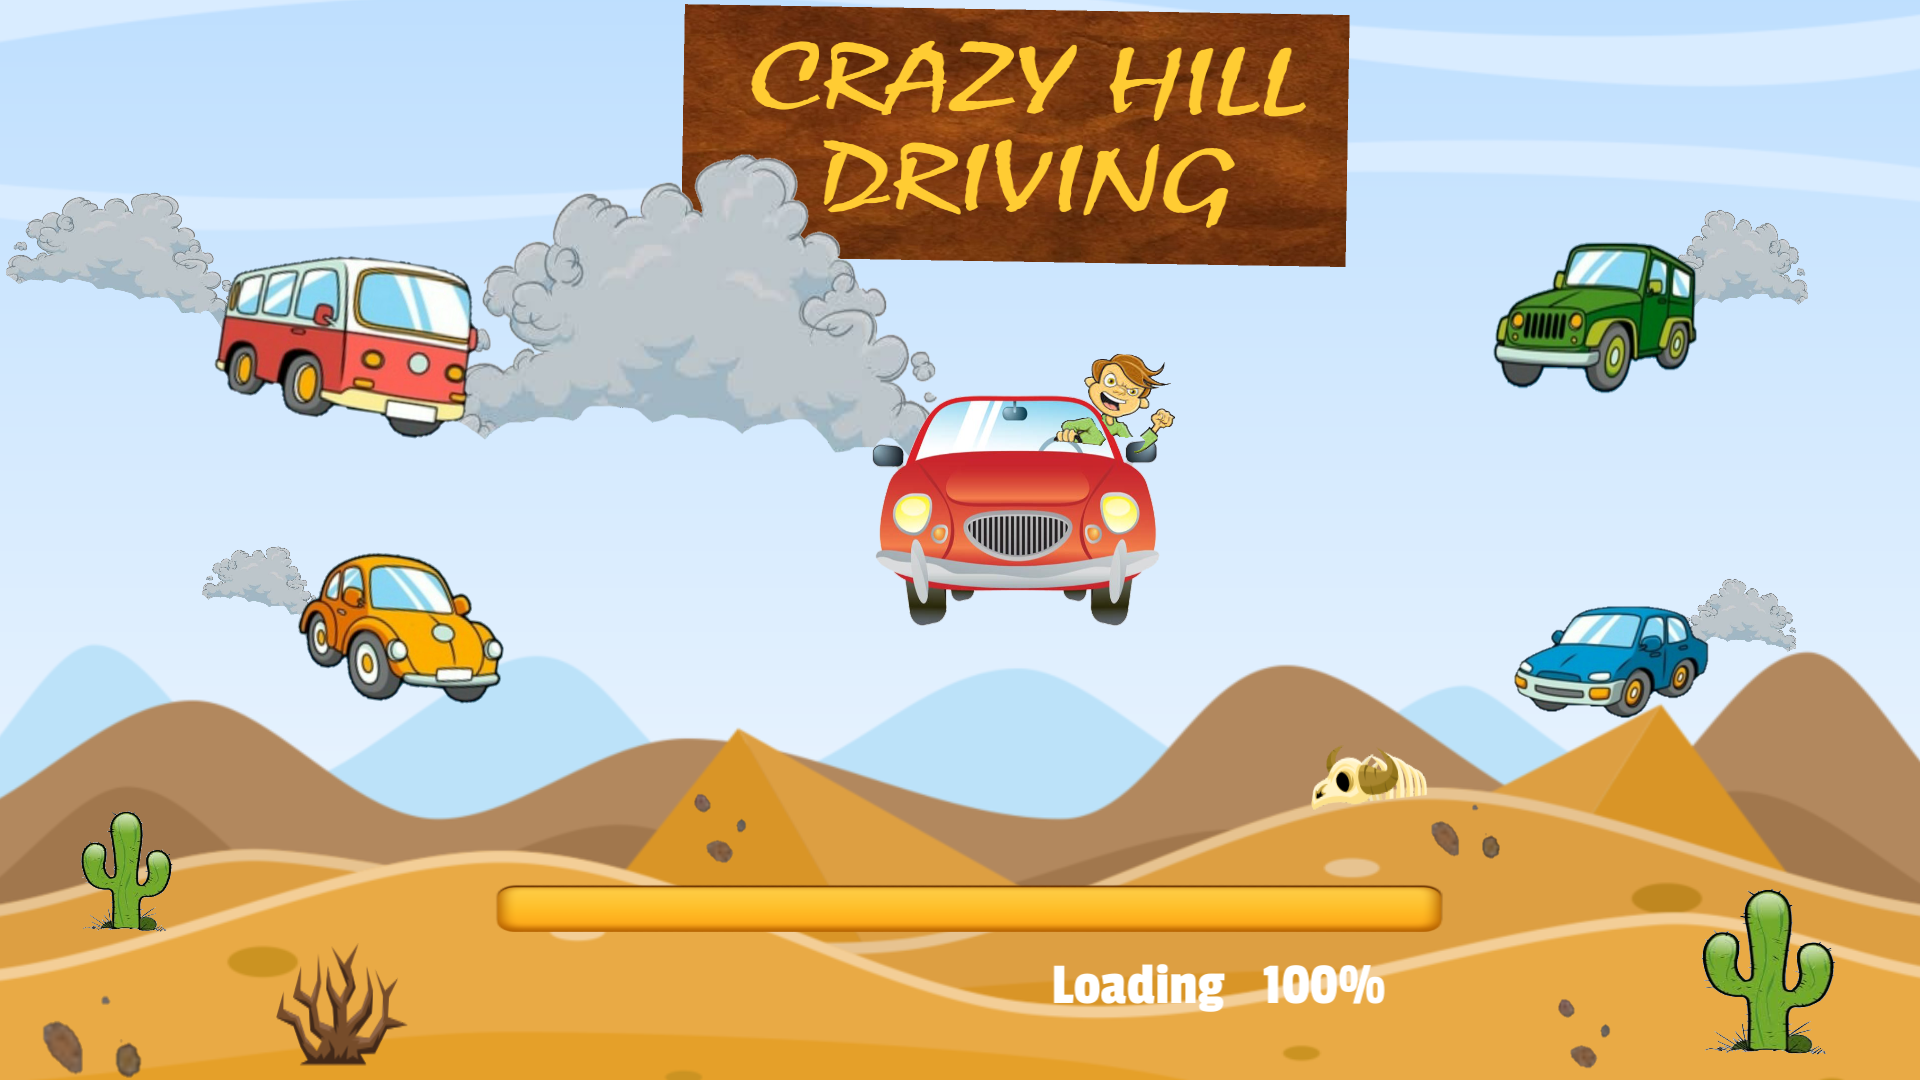 CRAZY HILL DRIVING